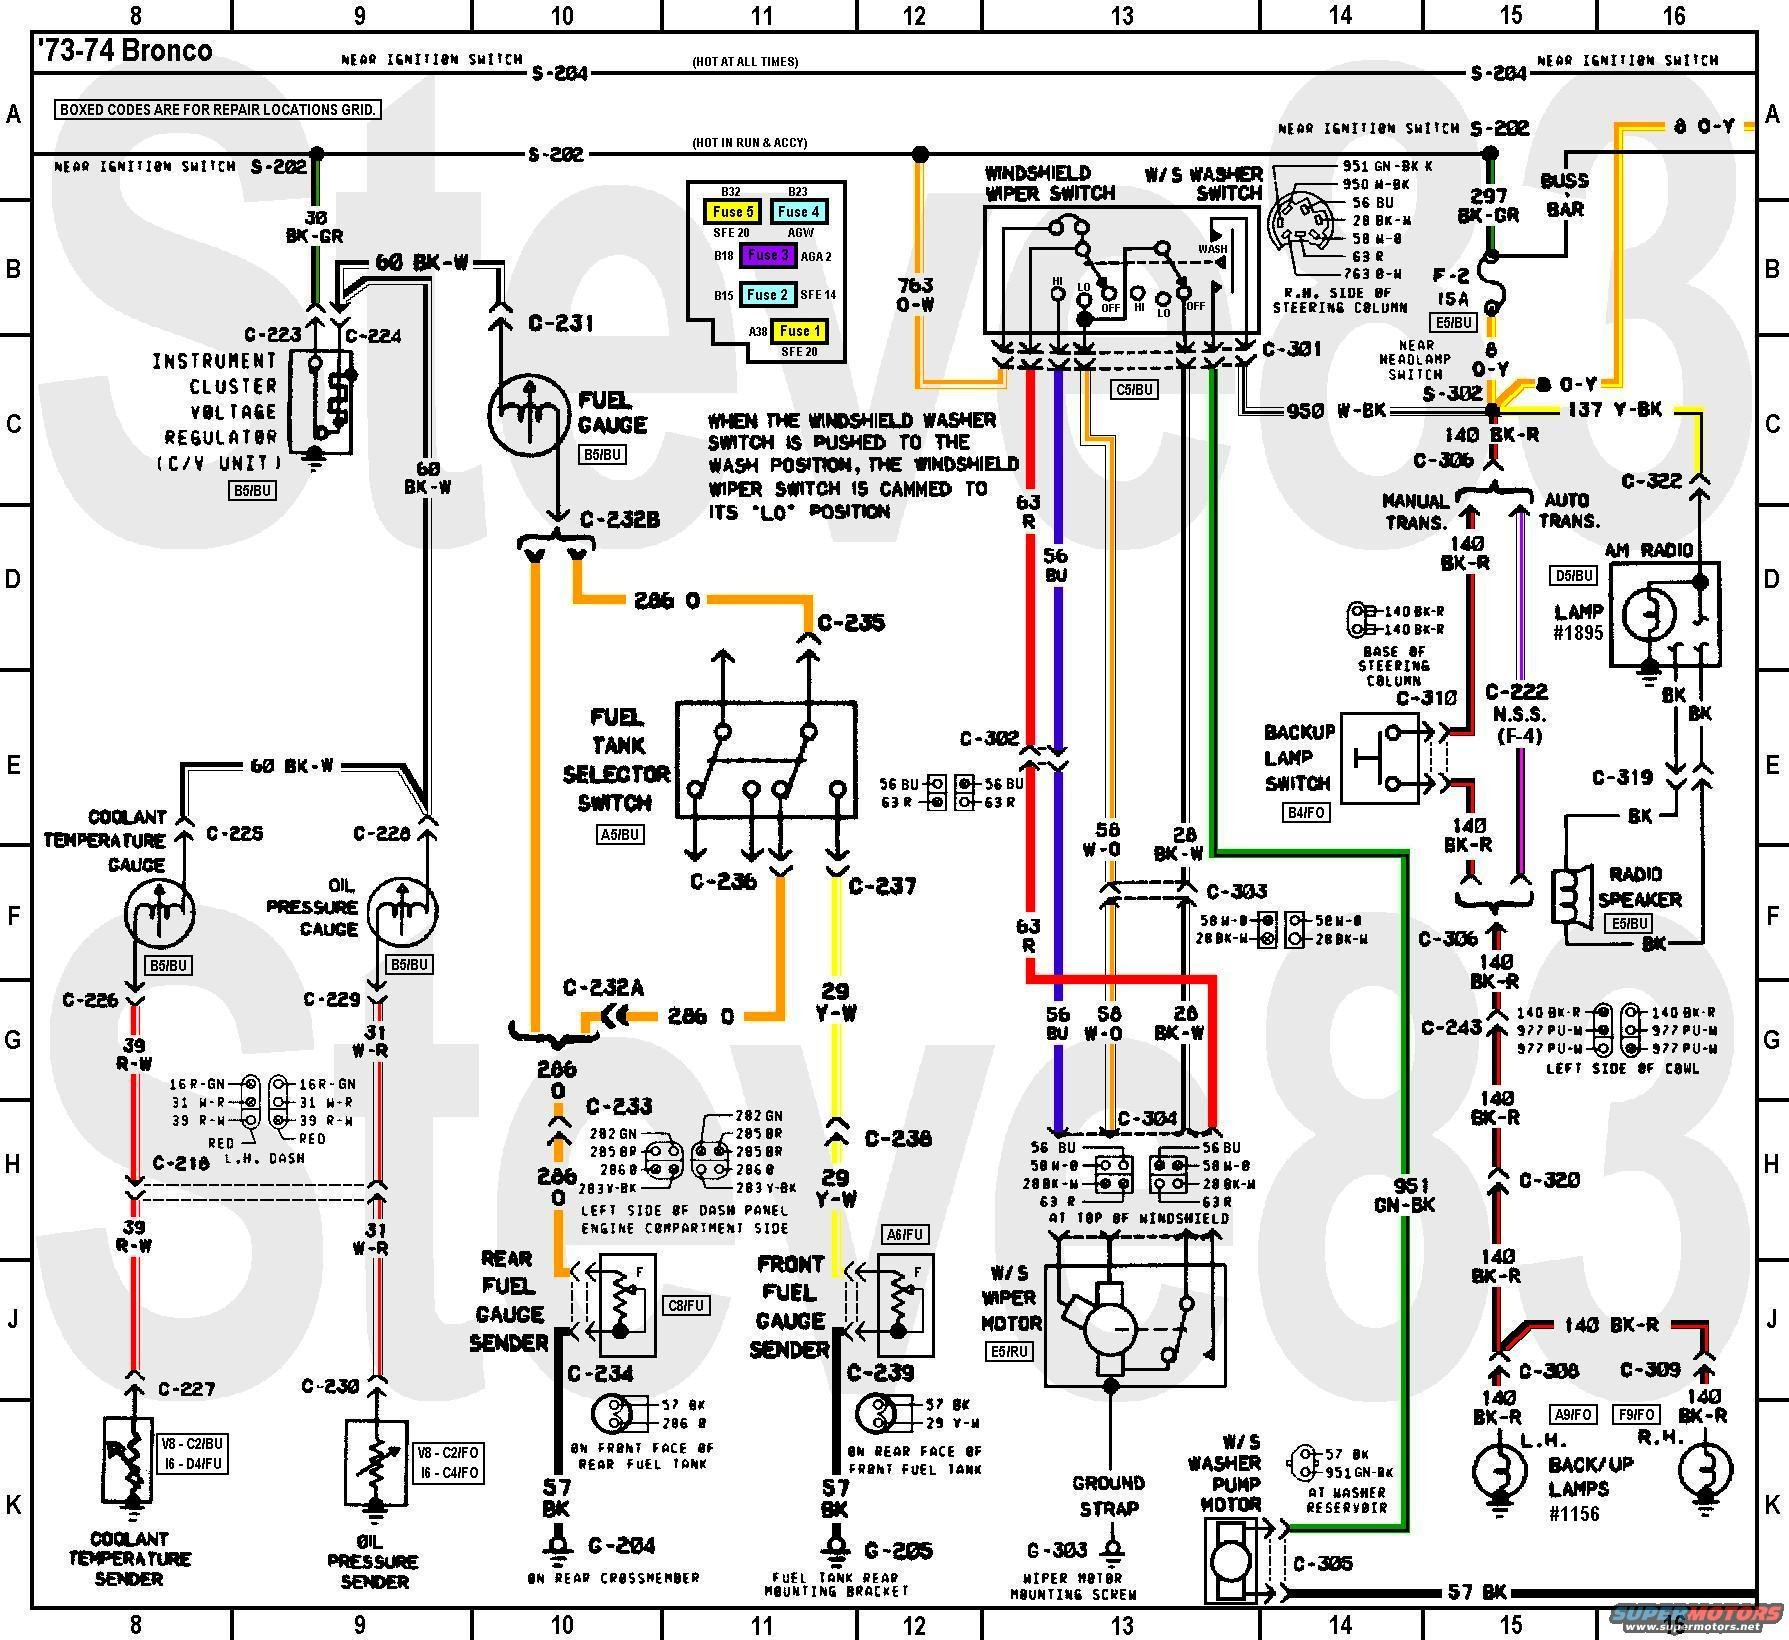 th?id=OIP.0AuwJcsg9AU8uQ__V_igmgEFDv&pid=15.1 1990 mitsubishi triton radio wiring diagram wiring diagram and Ford Radio Wiring Diagram at soozxer.org